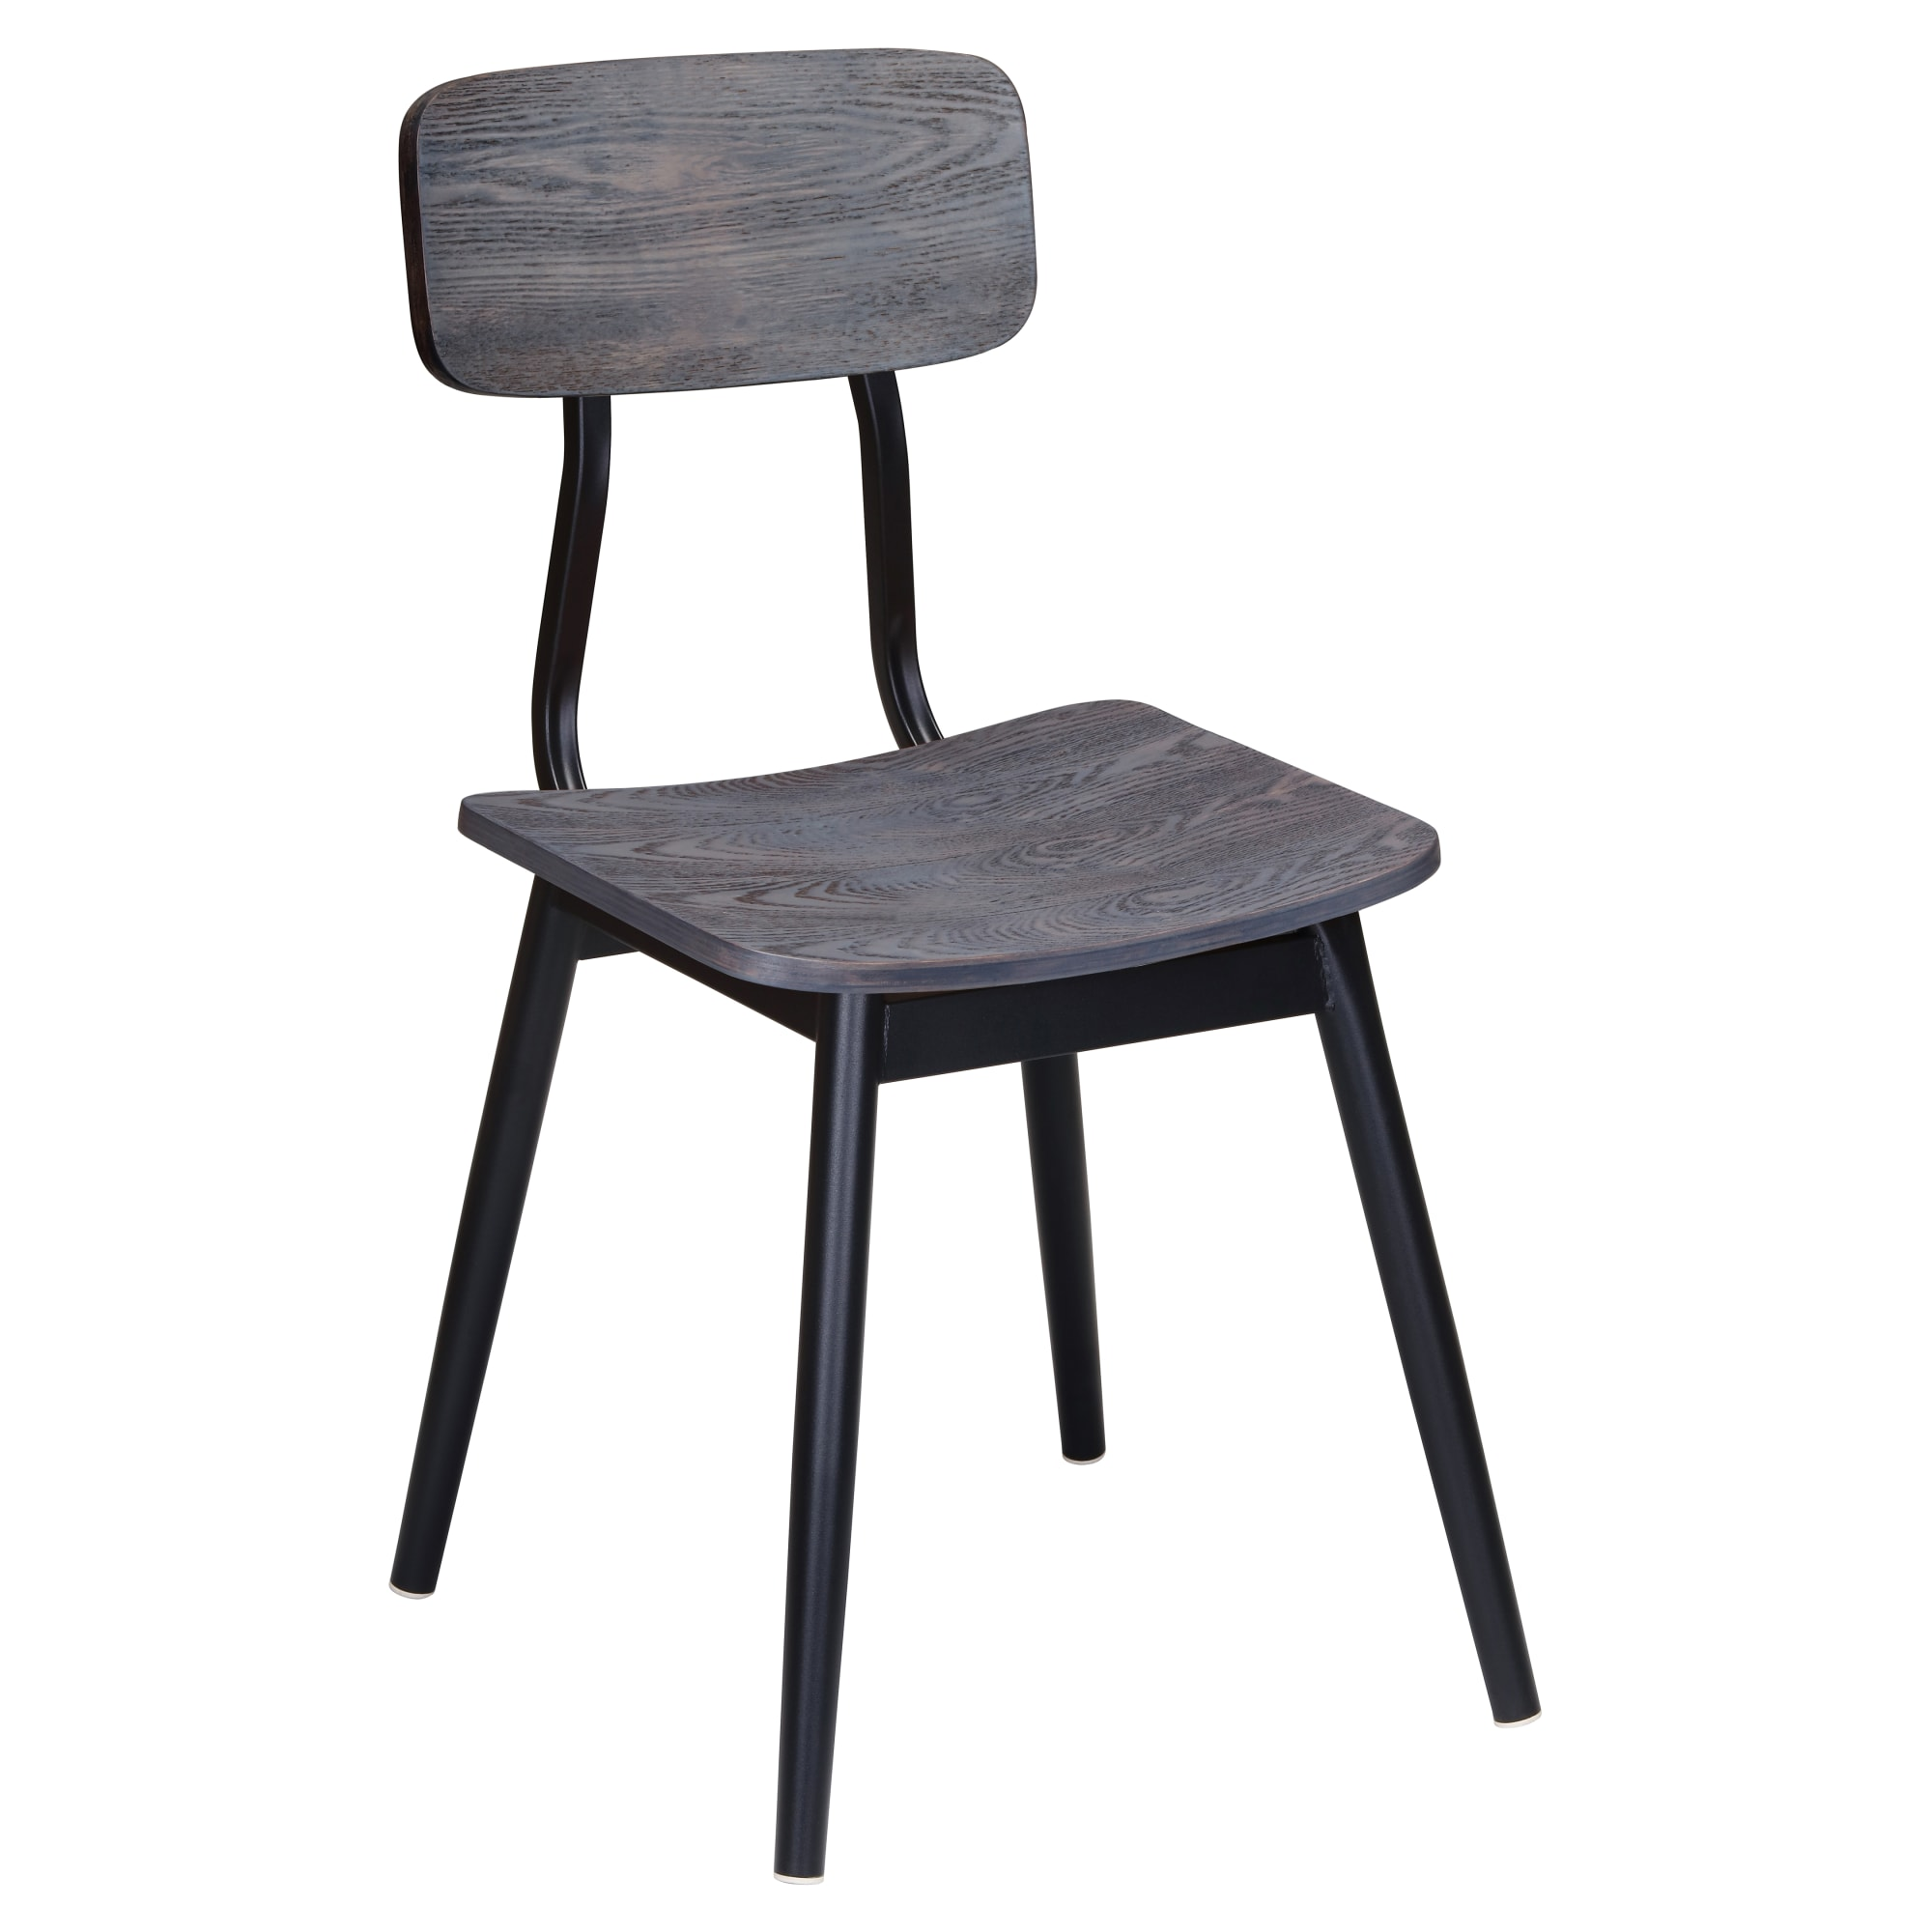 Basel Metal Chair with Veneer Back and Seat with Basel Metal Chair with Veneer Back and Seat